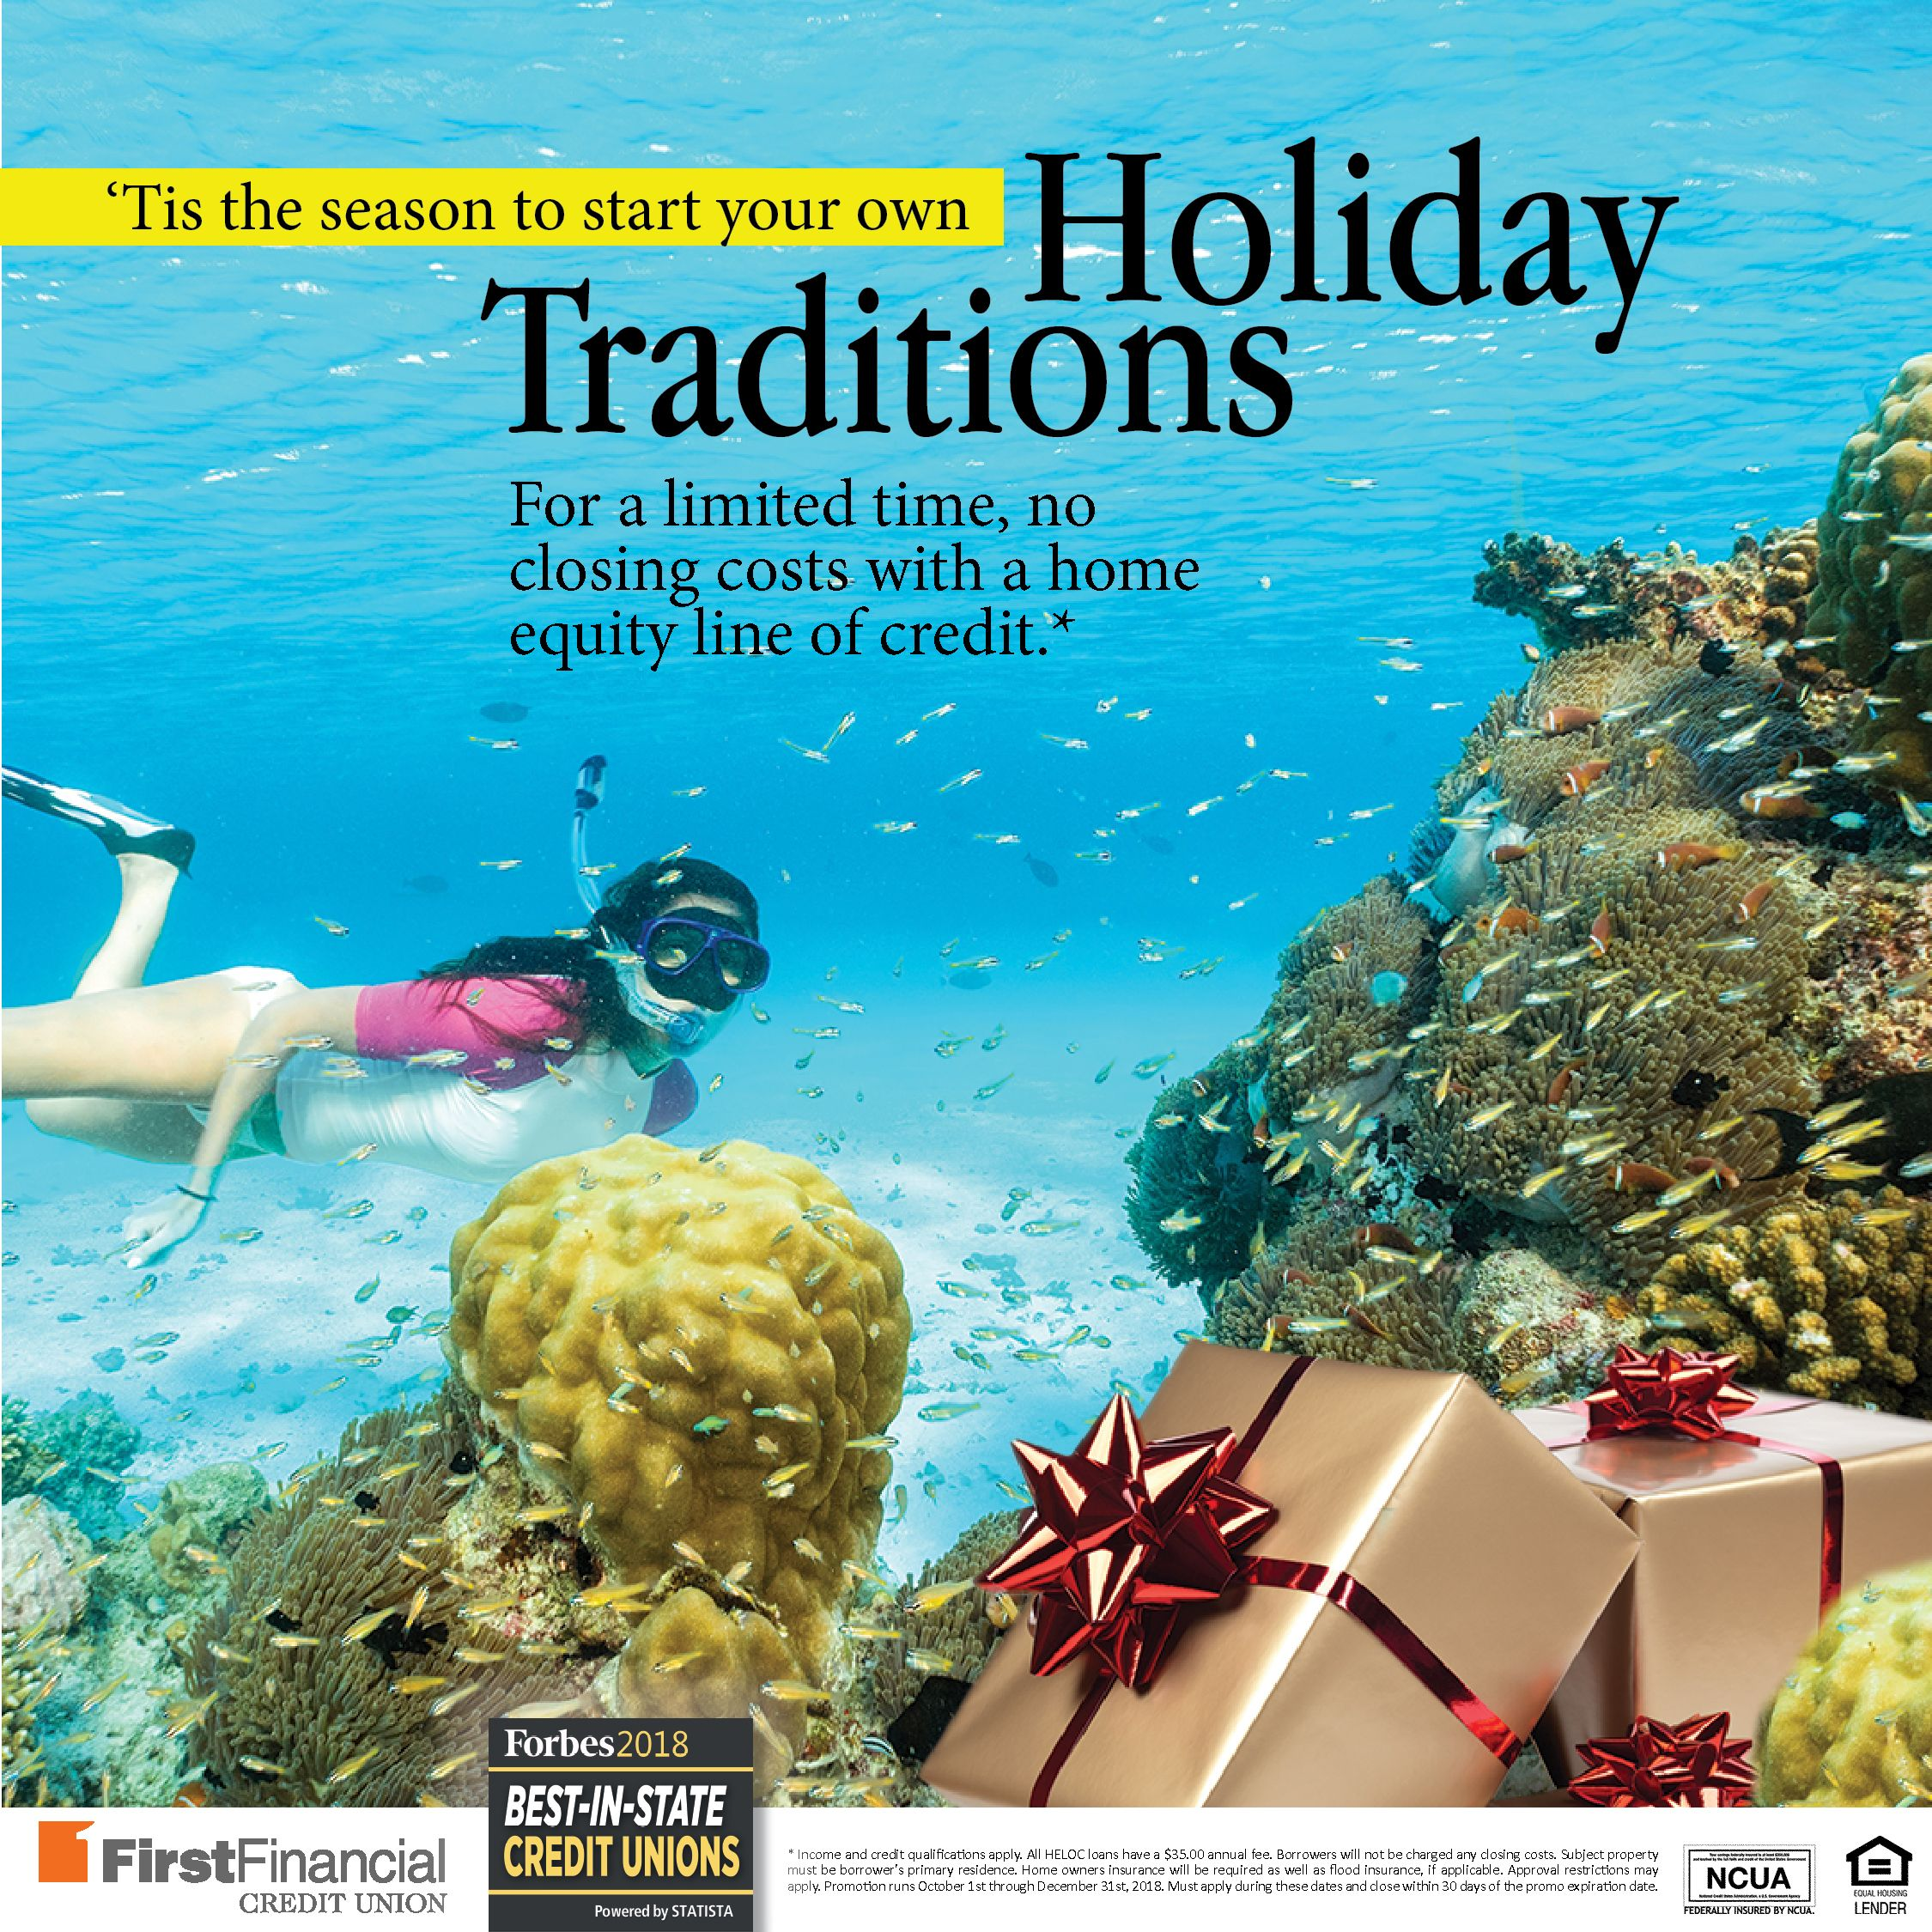 Tis the Season to start your own Holiday Traditions! Check